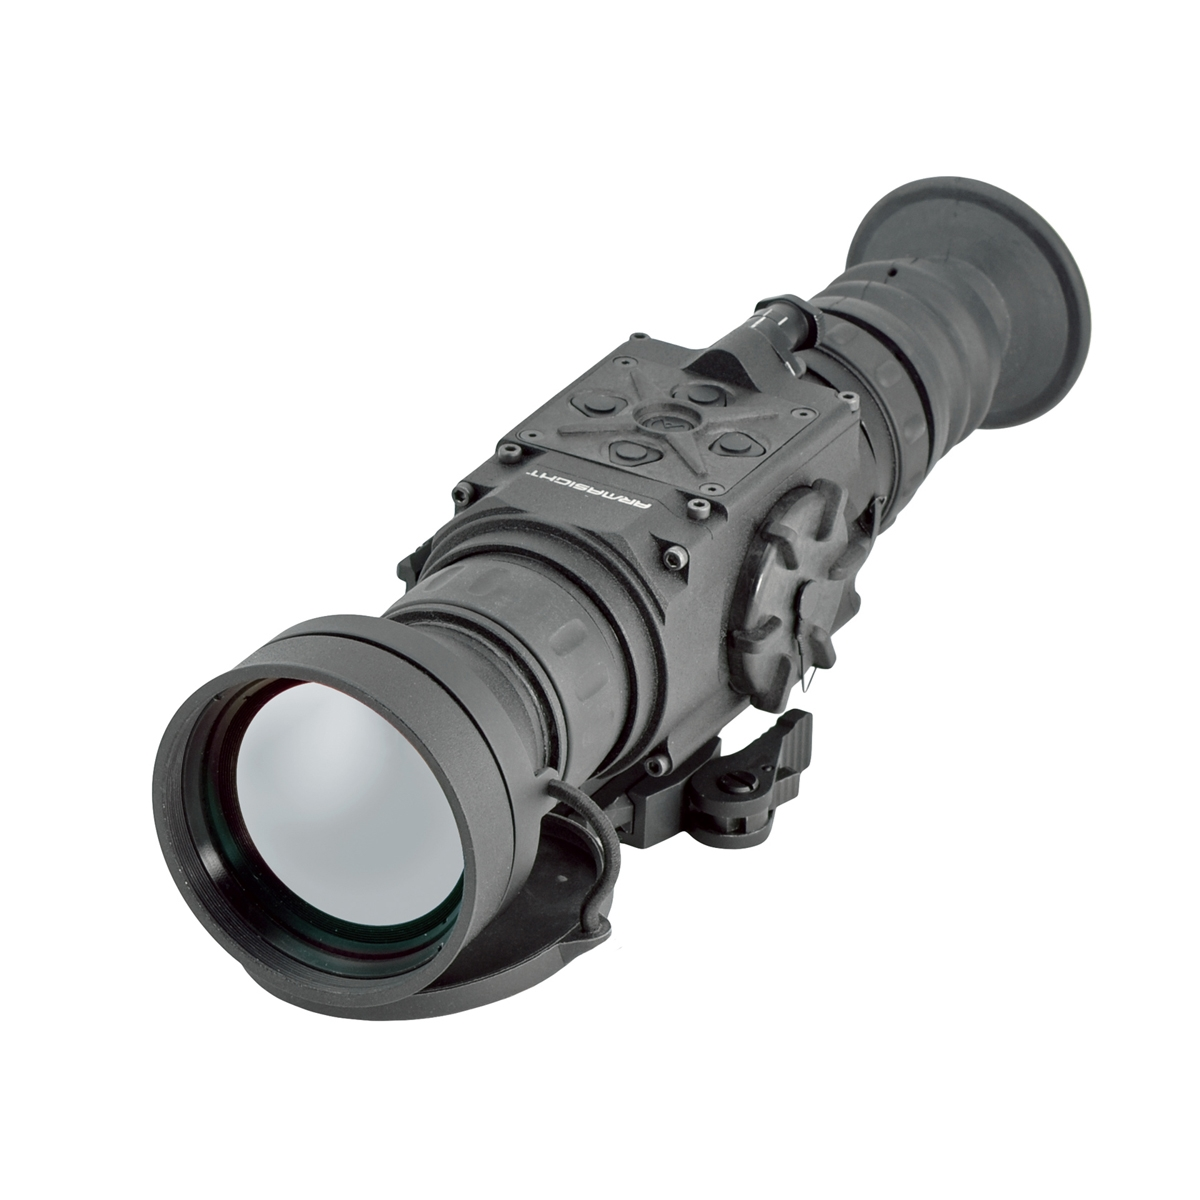 ARMASIGHT Zeus 7 160-30 Thermal Imaging Rifle Scope - TAT213WN7ZEUS71